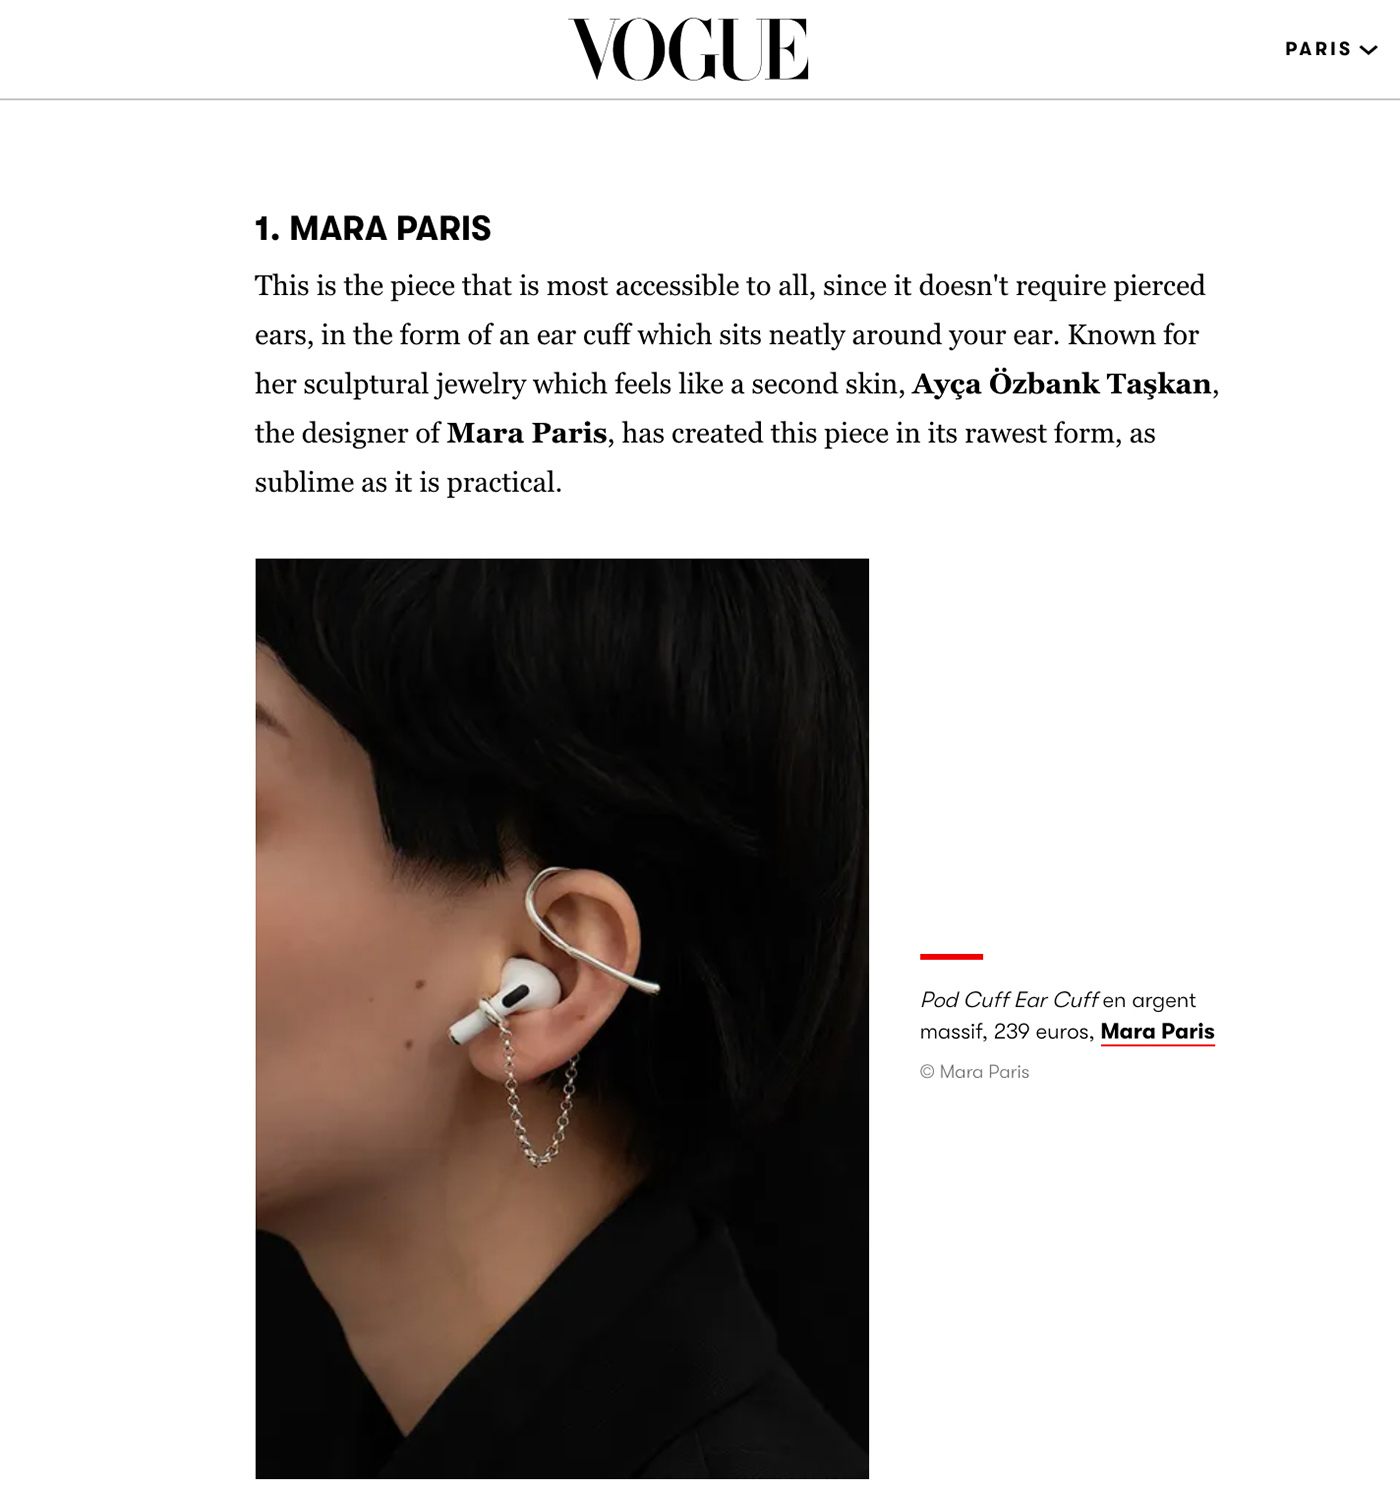 Vogue - 7 pretty and practical Airpod accessories so you will never lose yours again by Emeline Blanc